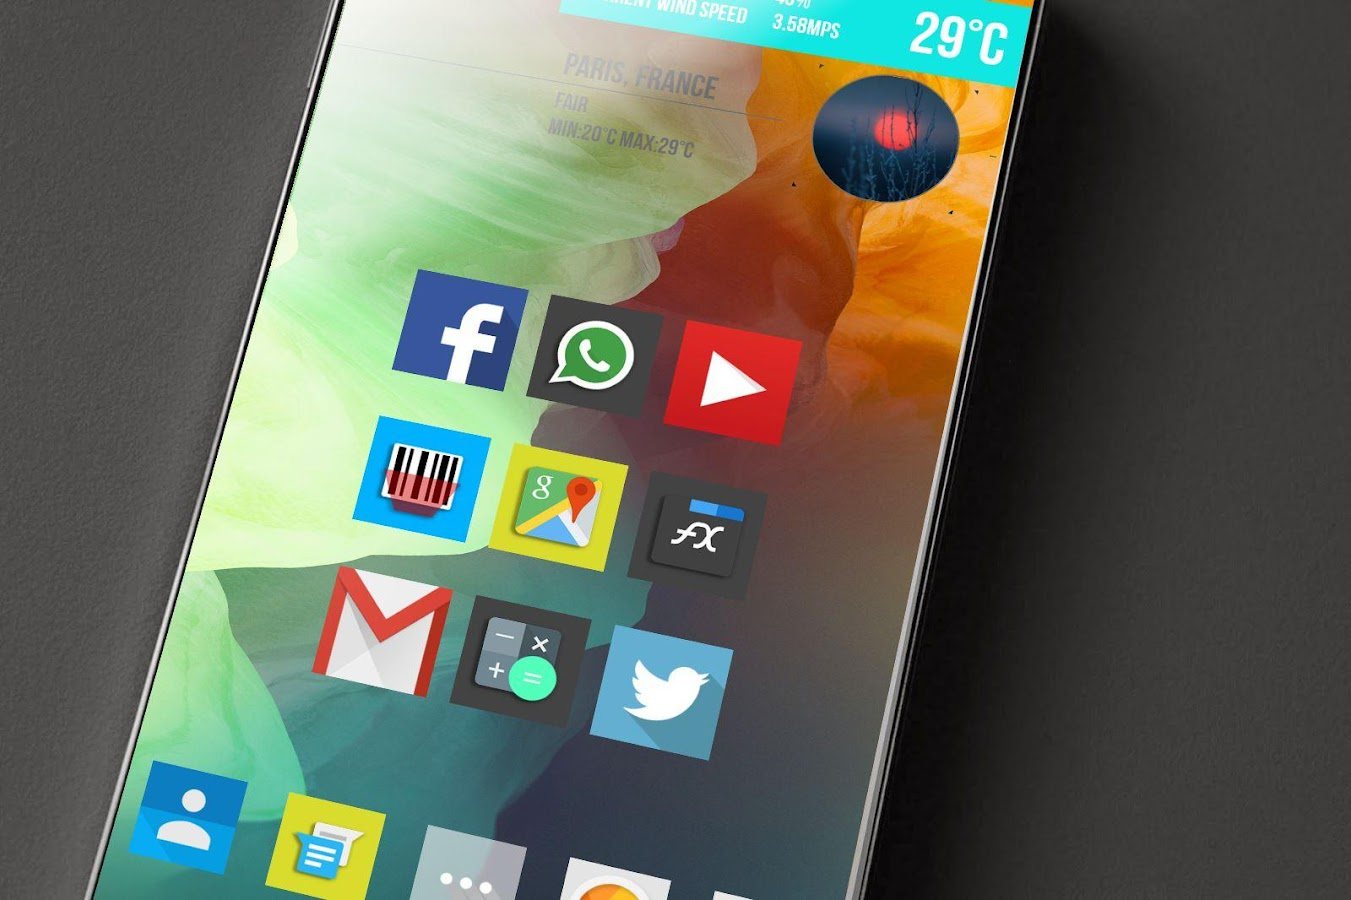 OnePlus 2 ultimate THEME NOVA 1 APK Download - Android